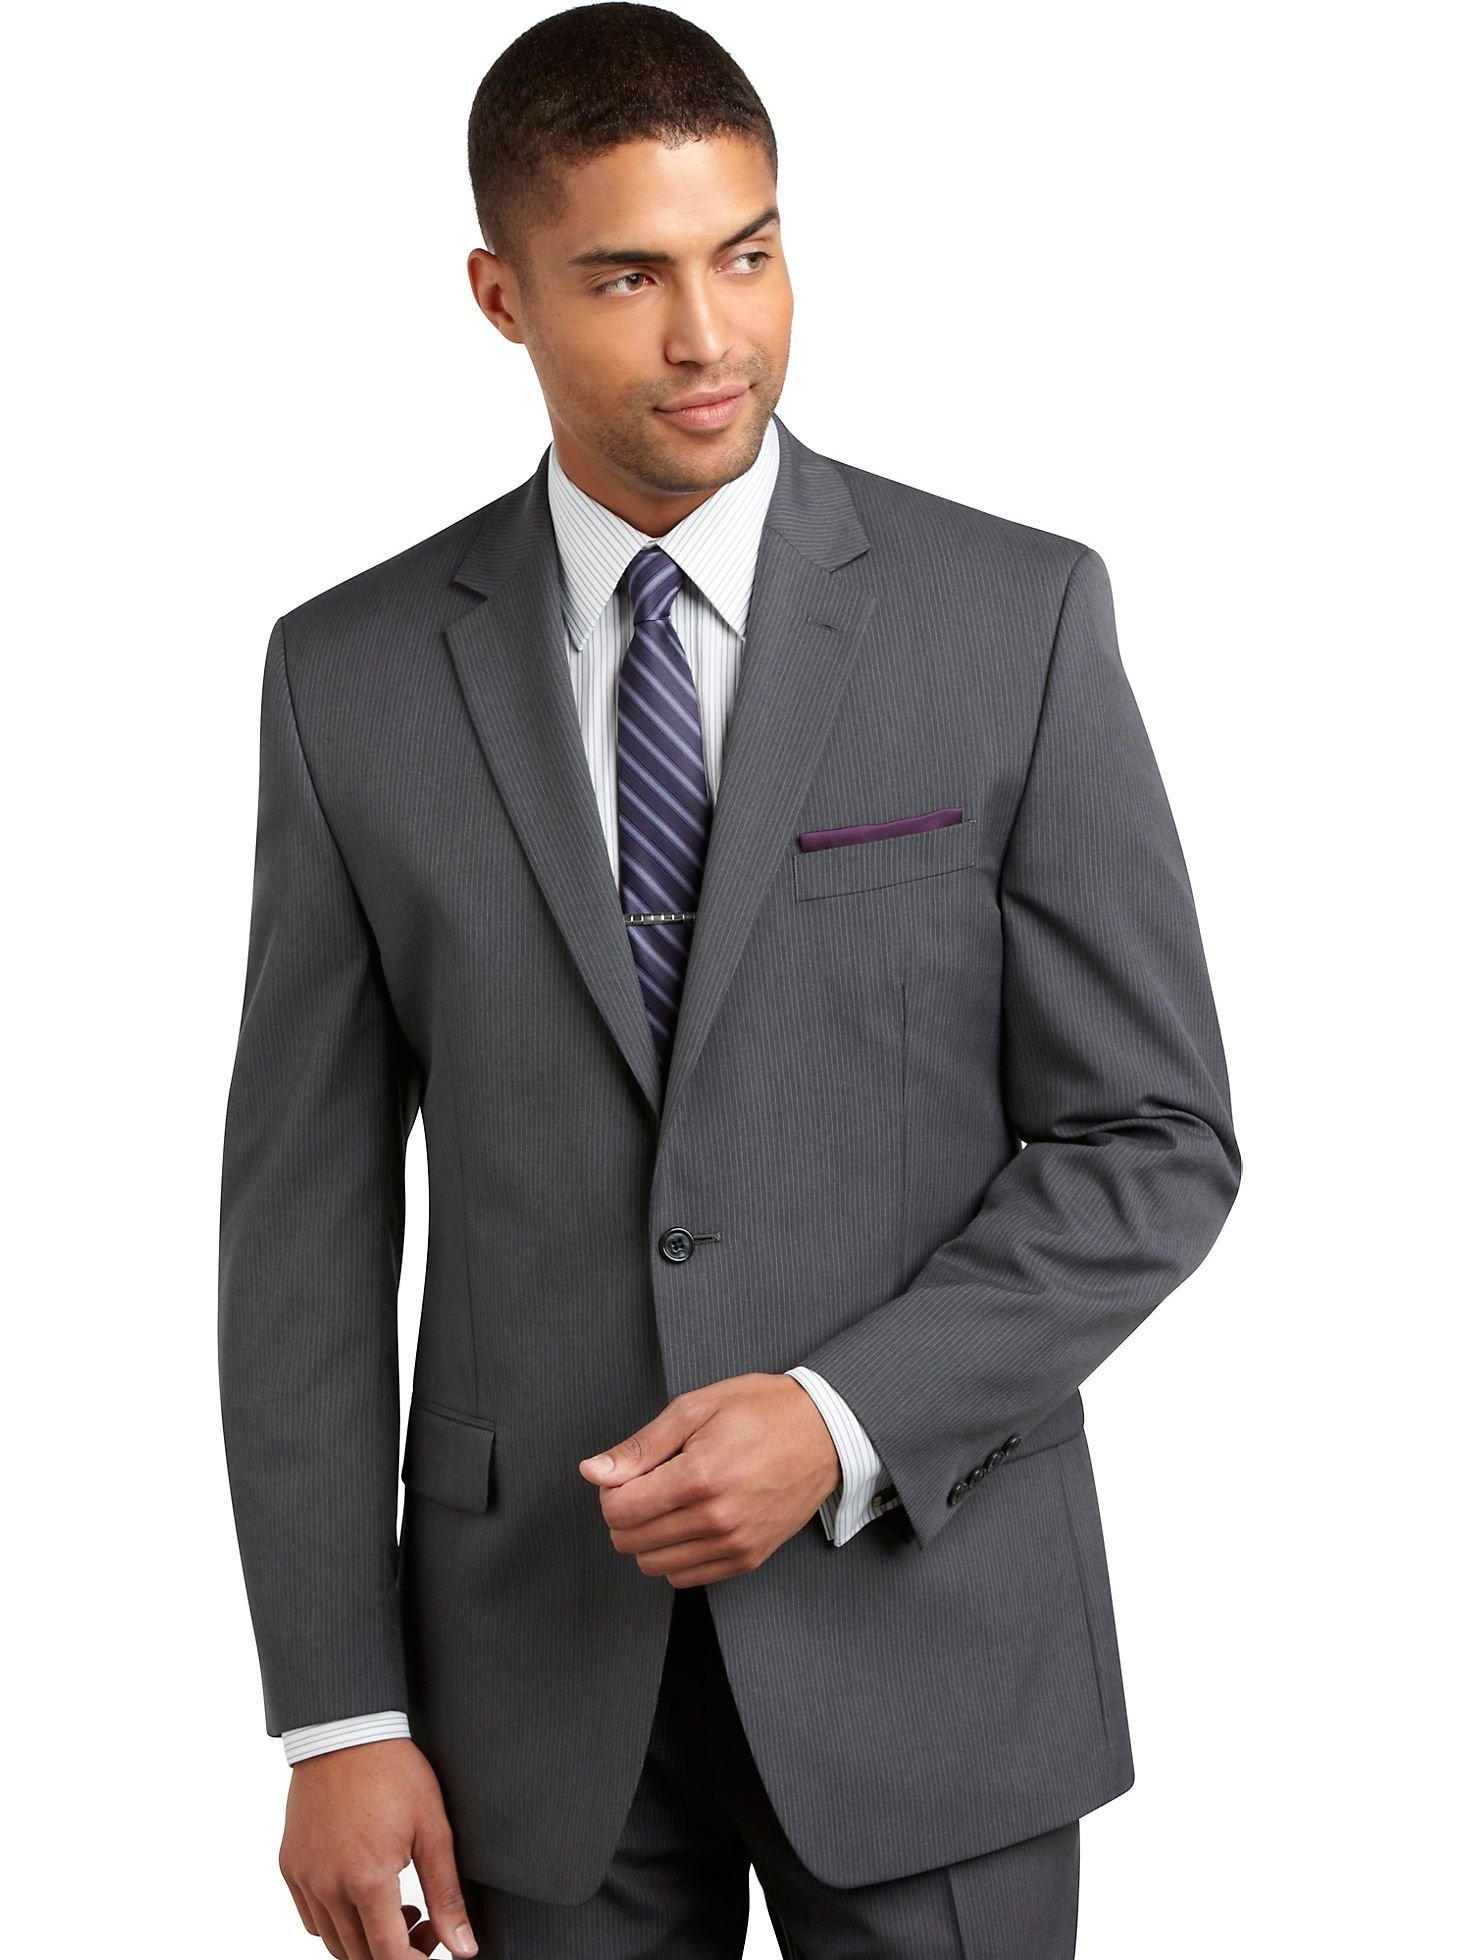 For the Guys.. Suits - Michael Kors Gray Multistripe Suit - Men\'s ...